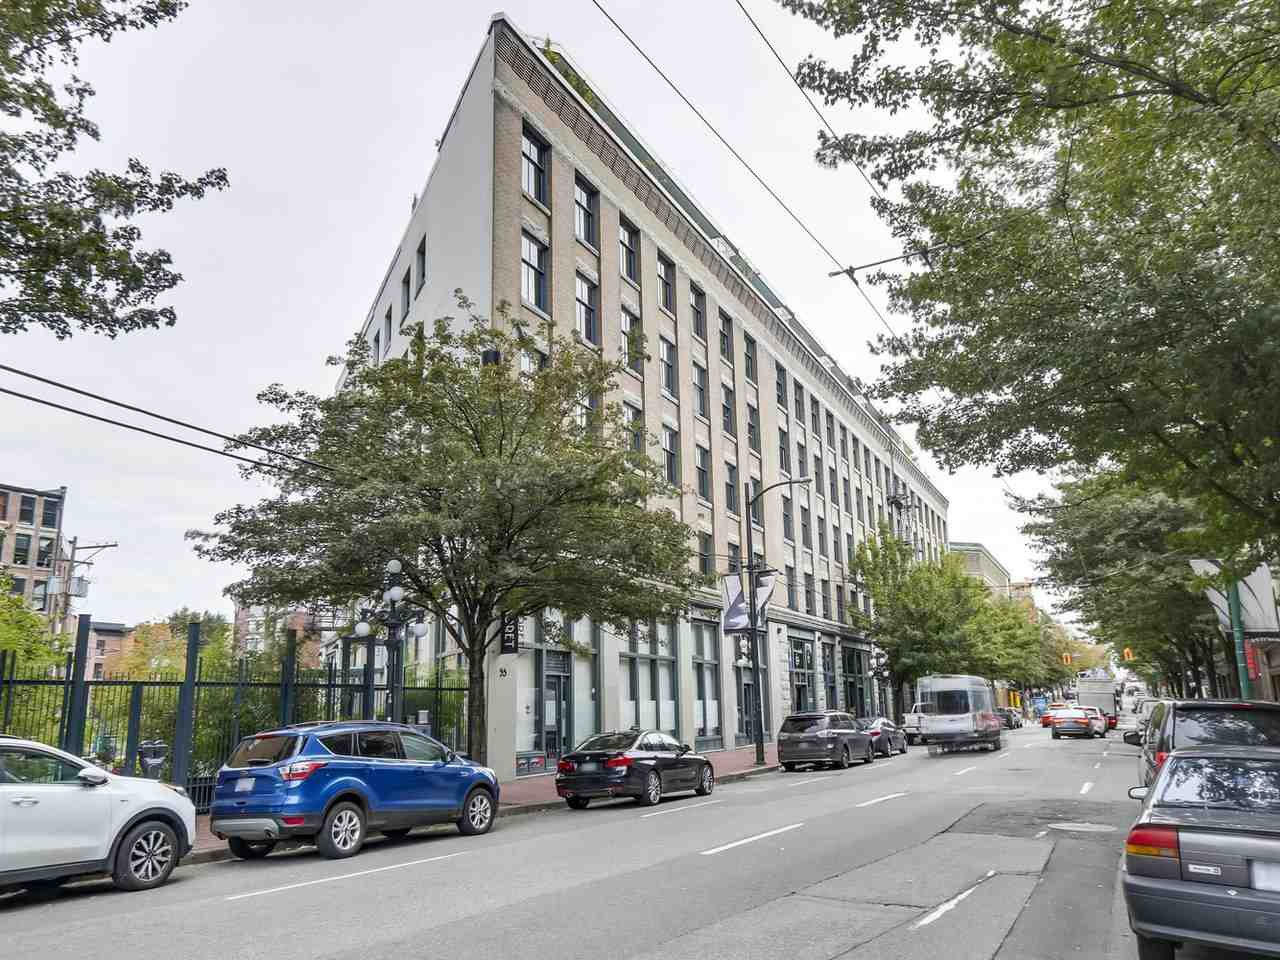 """Main Photo: 508 55 E CORDOVA Street in Vancouver: Downtown VE Condo for sale in """"KORET LOFTS"""" (Vancouver East)  : MLS®# R2404492"""